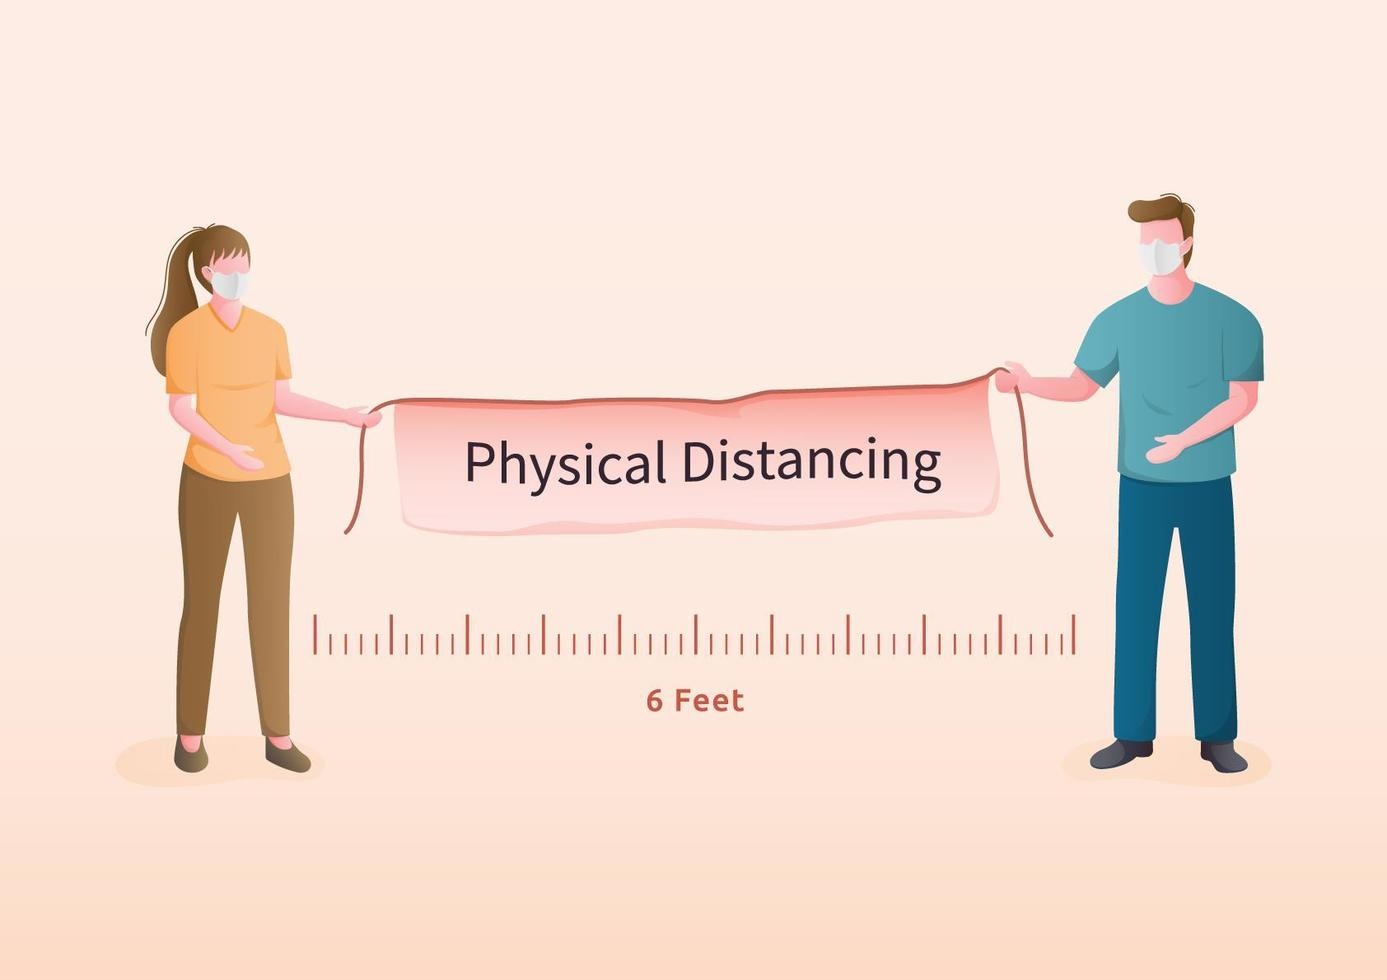 Masked man and woman holding physical distancing banner vector